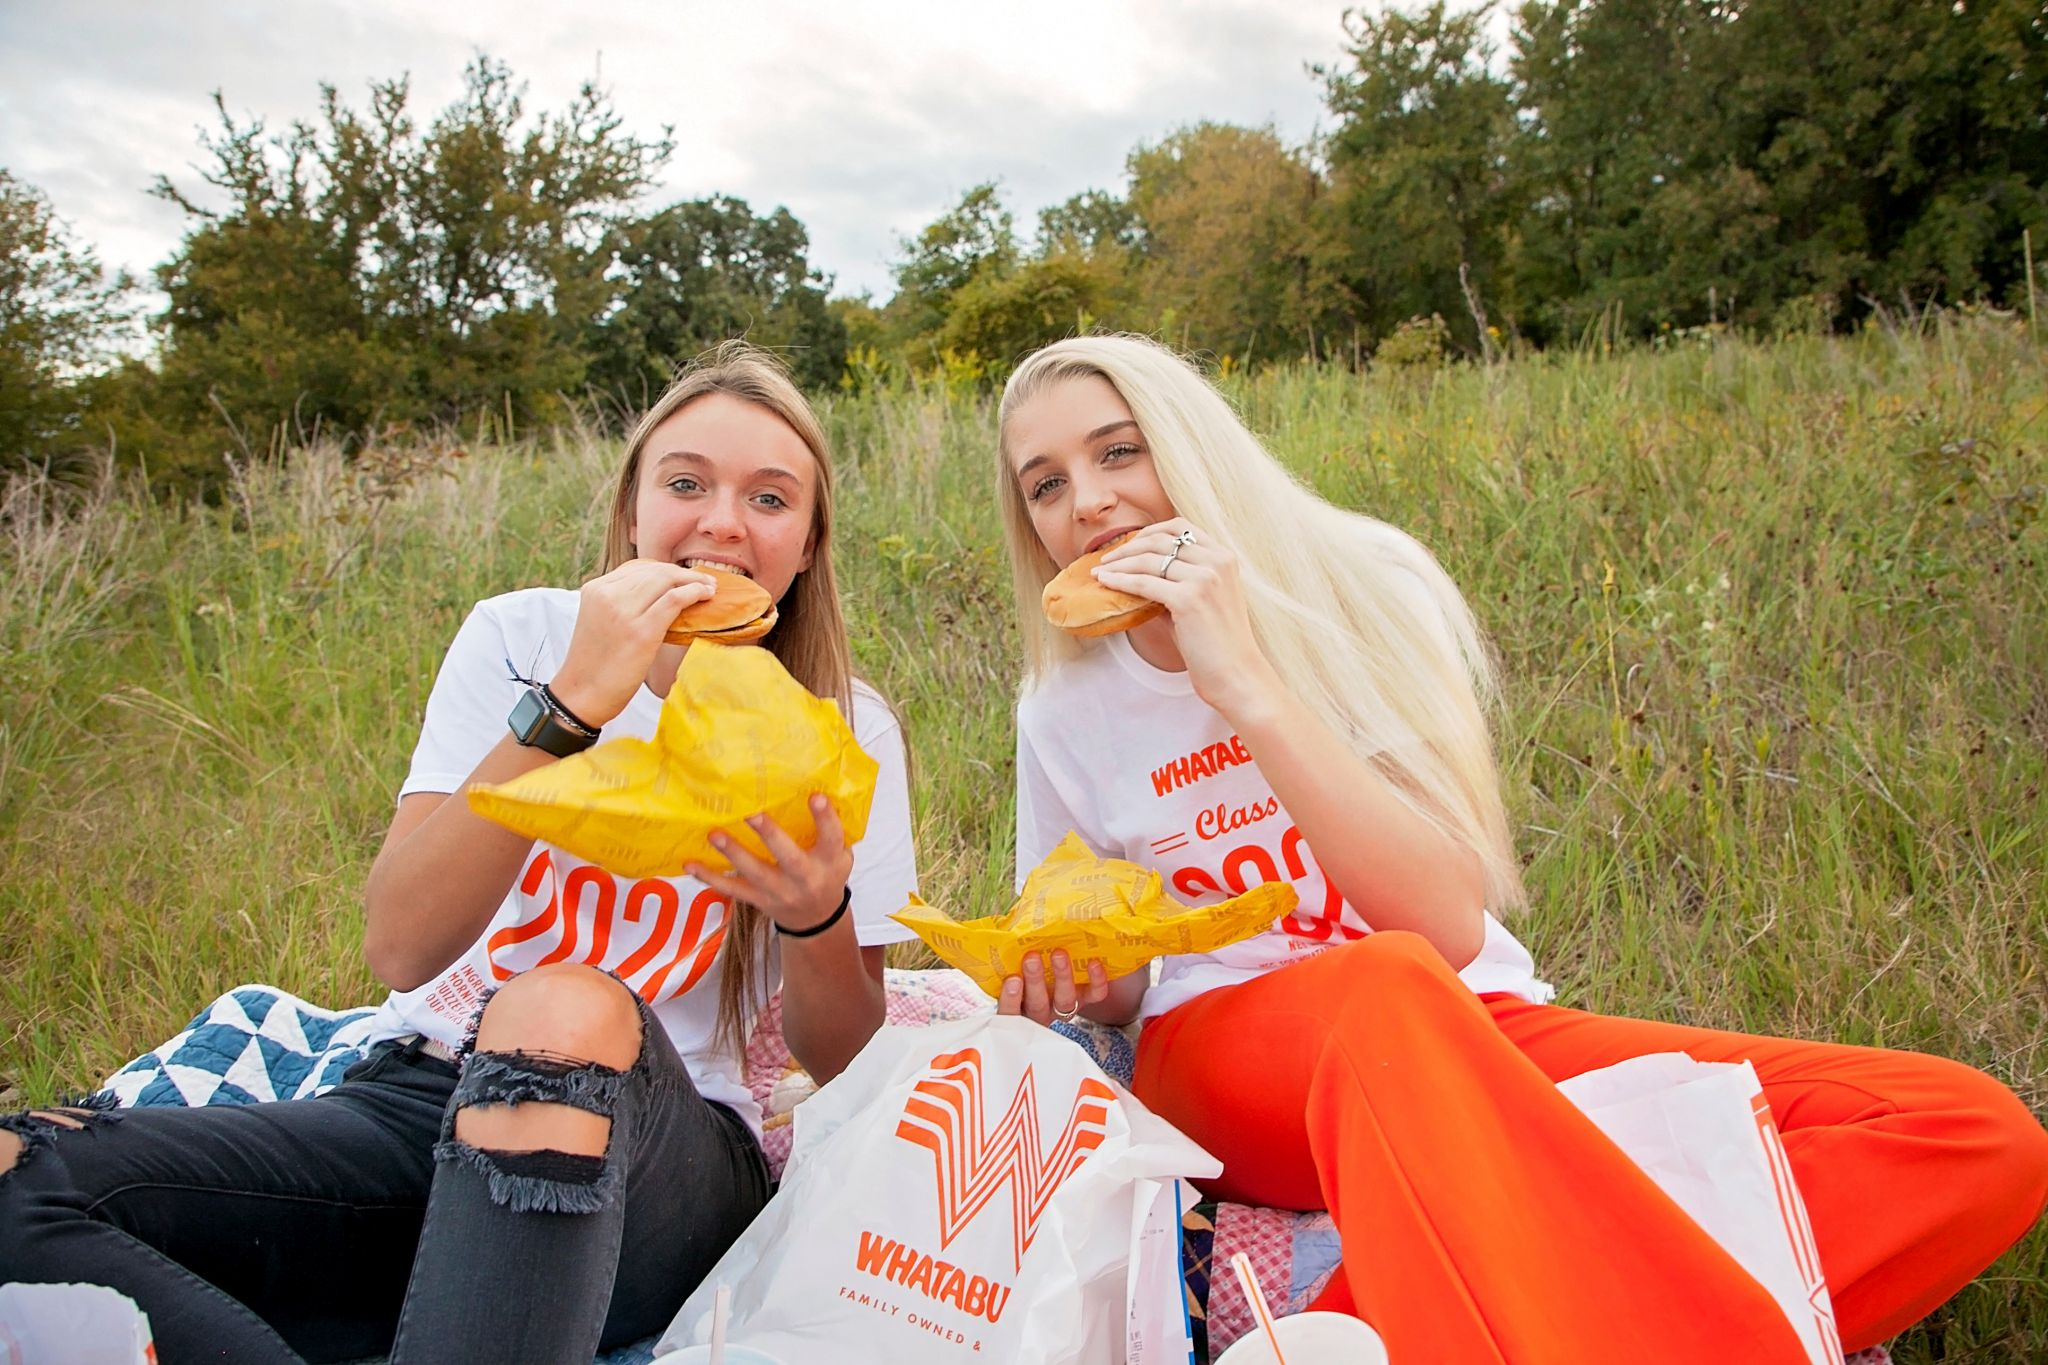 Texas best friends celebrate final school year with Whataburger-themed photo shoot